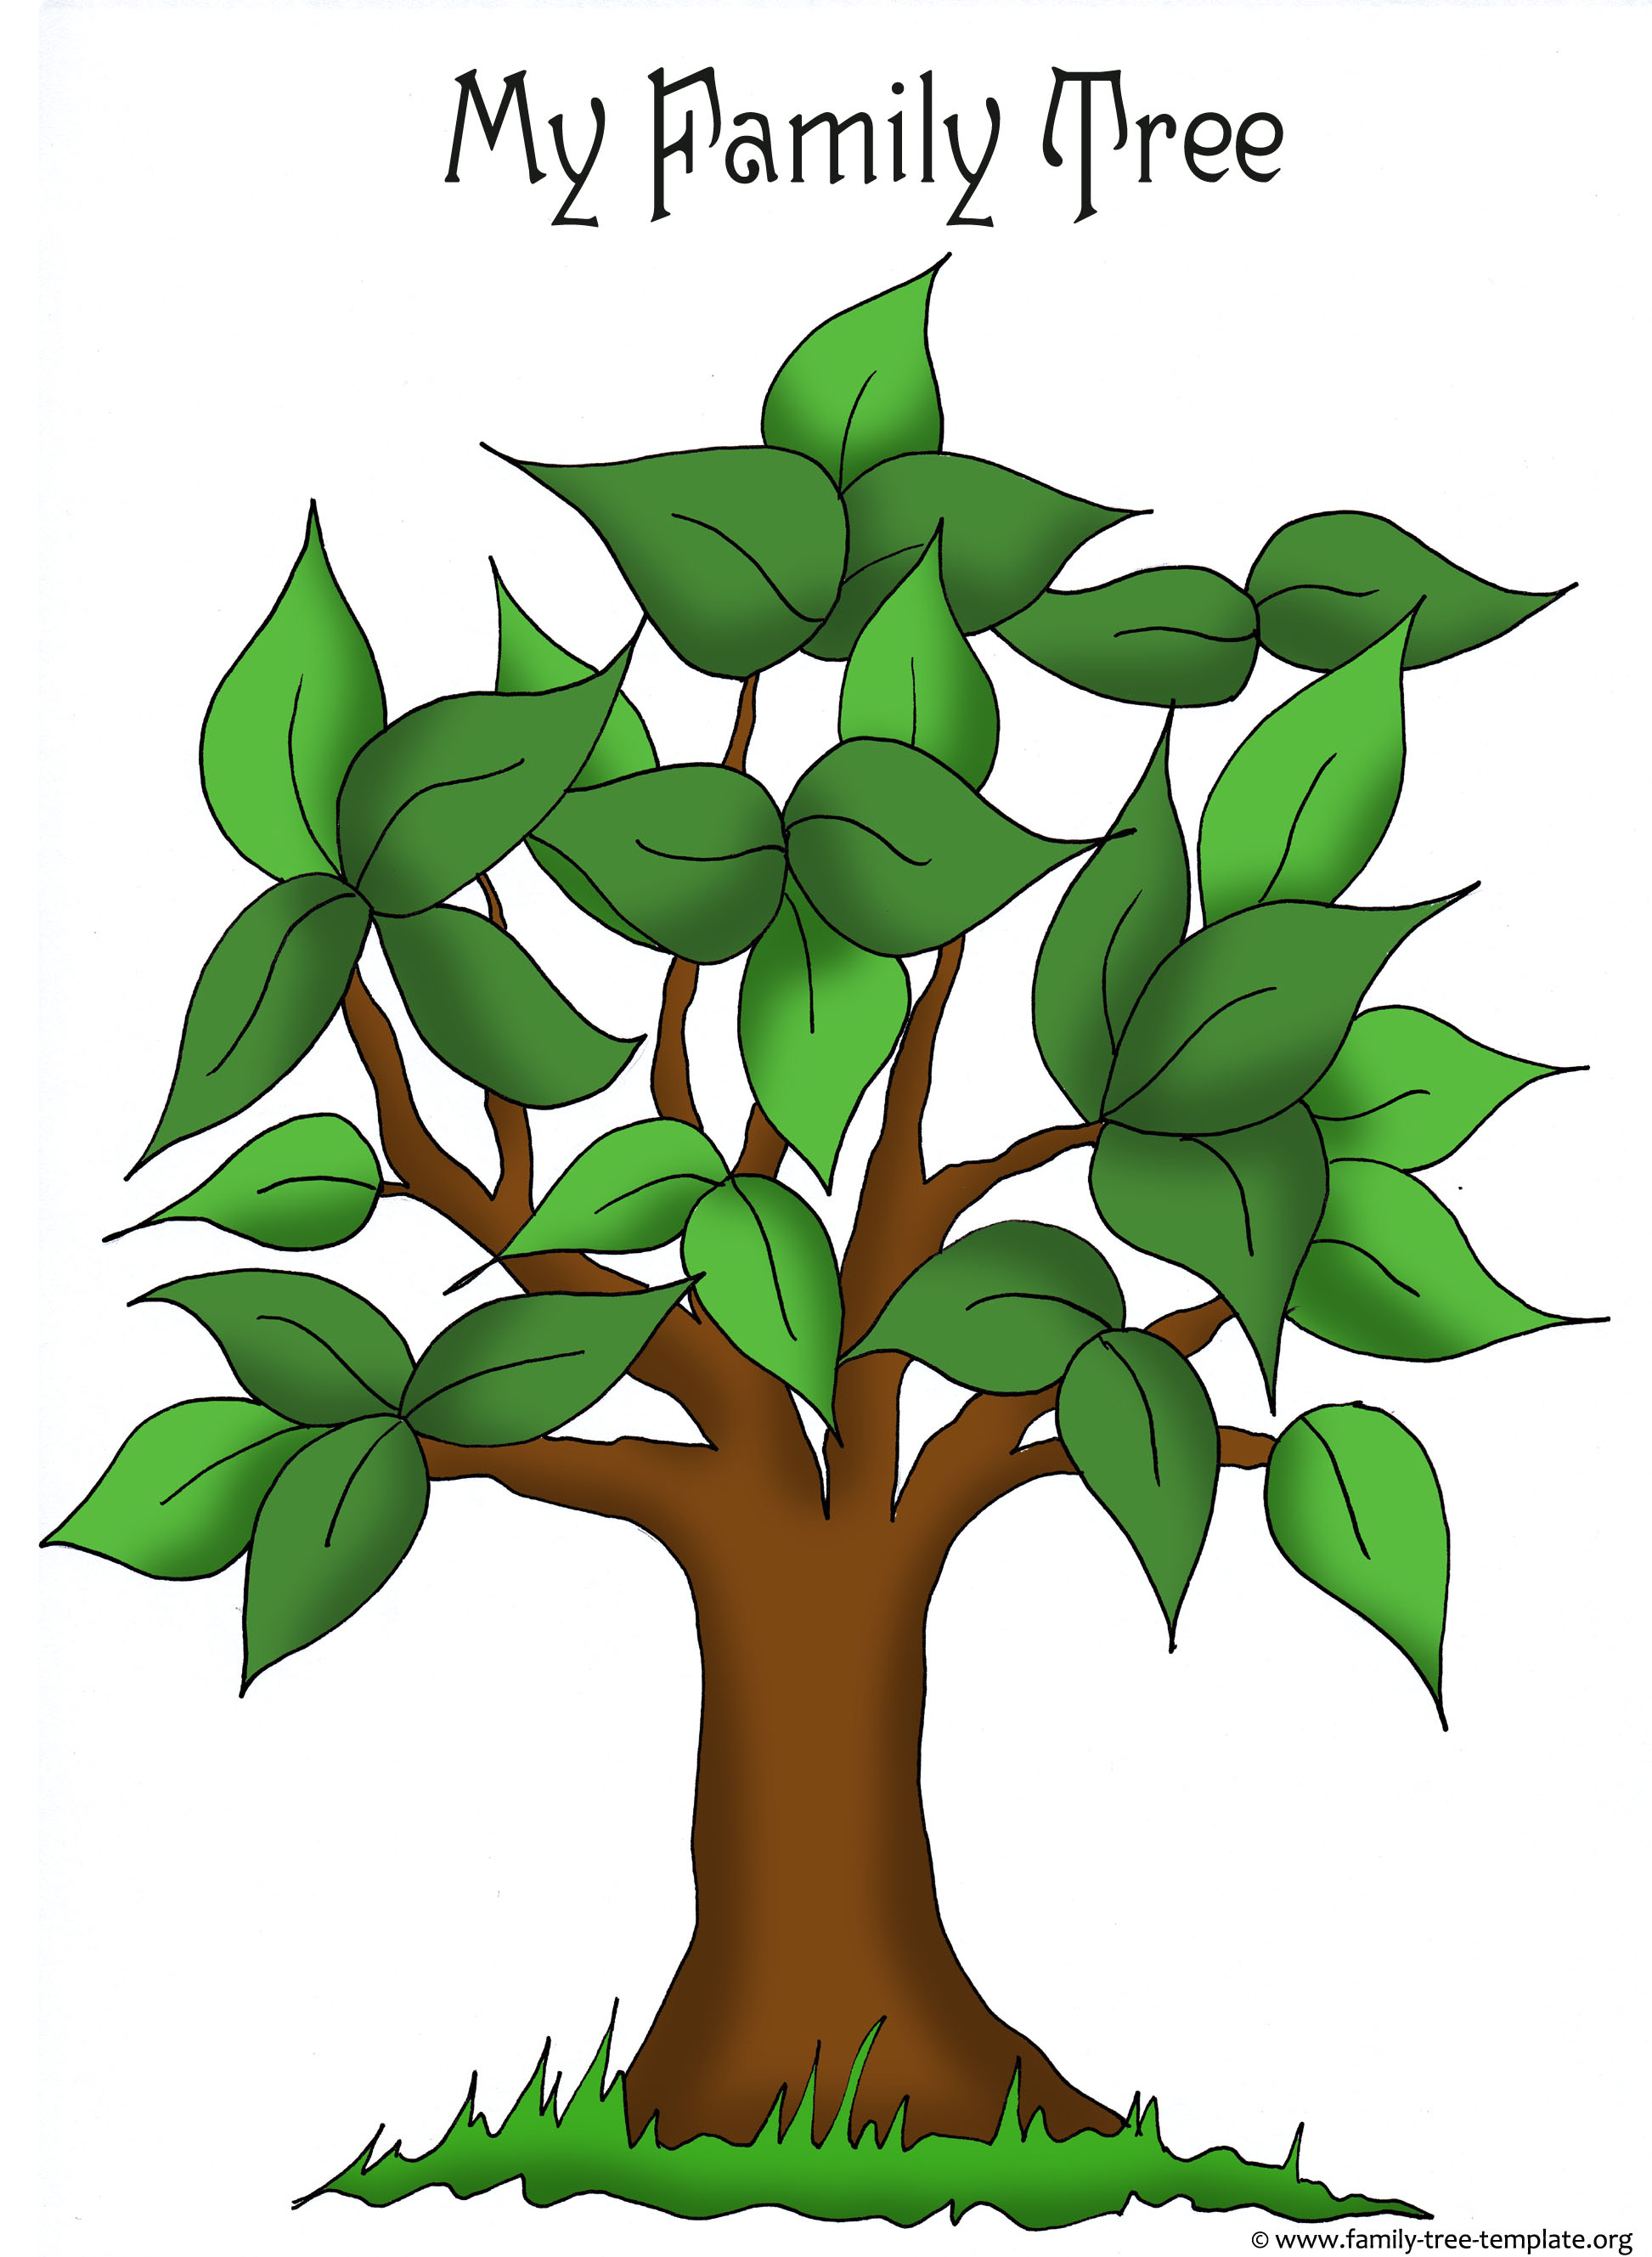 Family Tree Templates & Genealogy Clipart for Your Ancestry Map ...